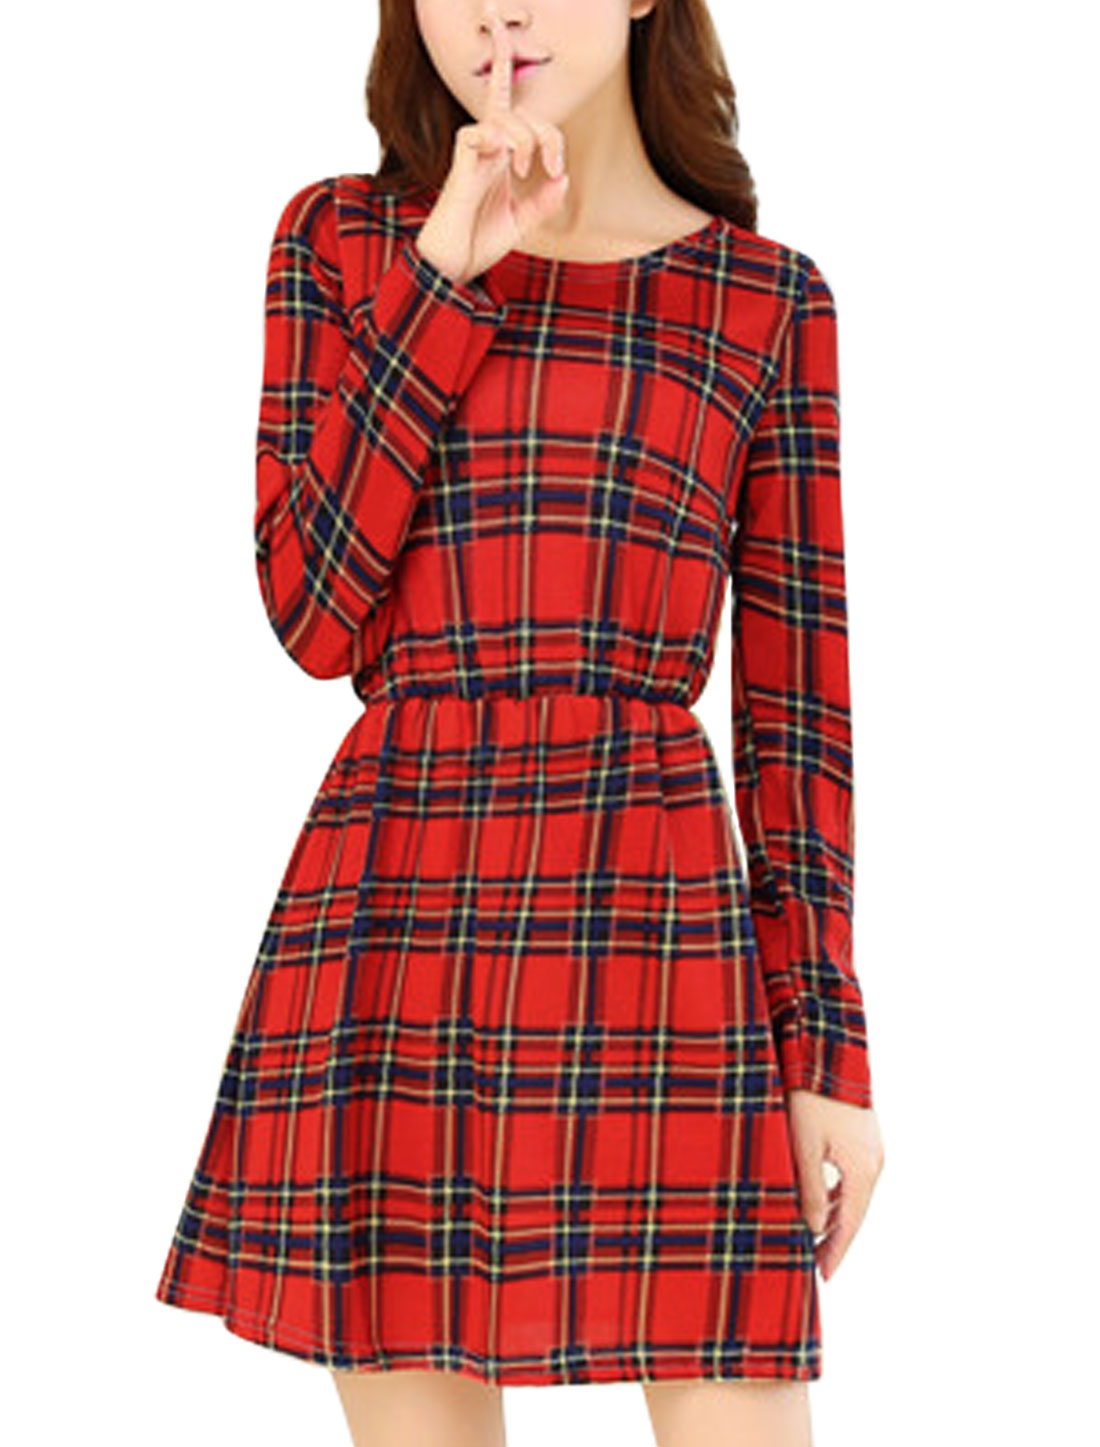 Fashion Allover Check Print A Line Unlined Mini Dress for Women Red XS